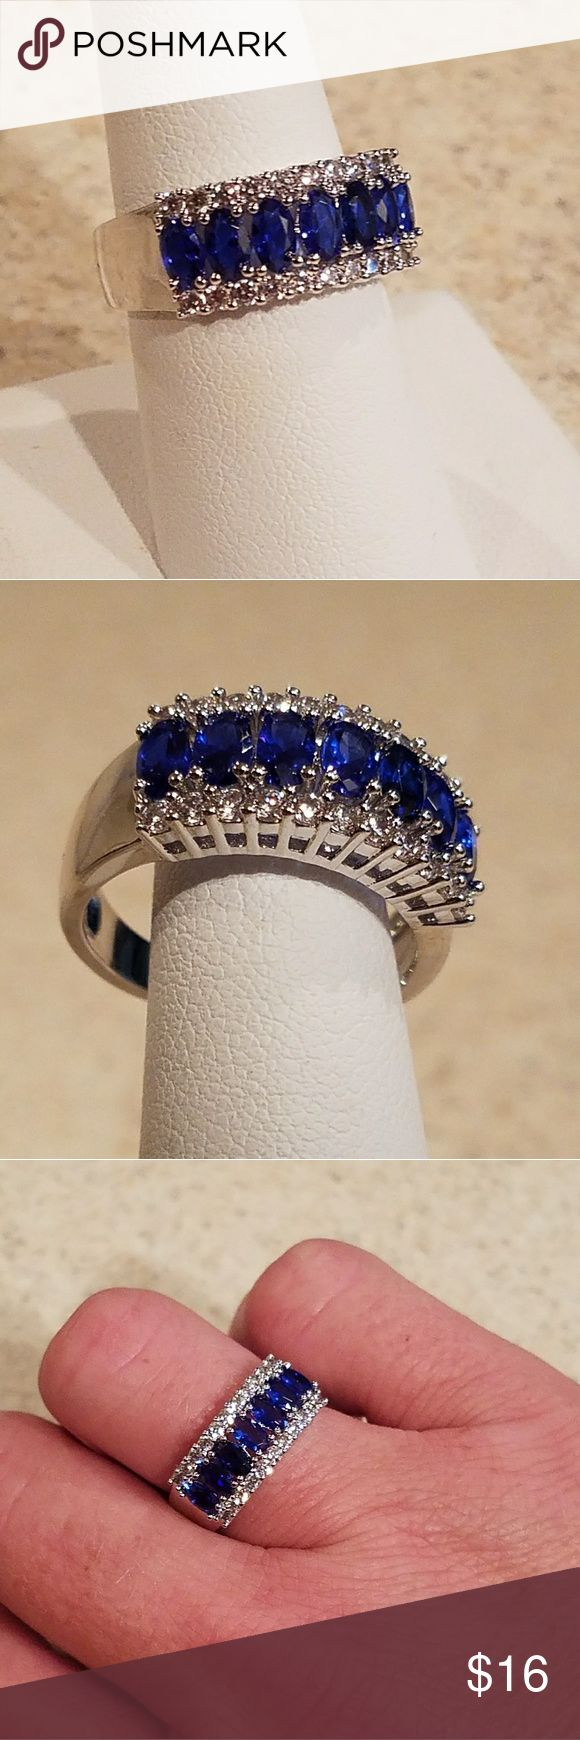 New WGP Oval-Cut Lab Created-Blue CZ Ring Size 8 New & Stunning! Gorgeous White Gold Plated 7 Stone Oval-Cut Lab Created-Blue Cubic Zirconia Ring!!! Tons of Sparkle & Shine! Add a pop of color to spice up any Look! Size 8  PLEASE USE OFFER FEATURE TO NEGOTIATE. THANKS! Jewelry